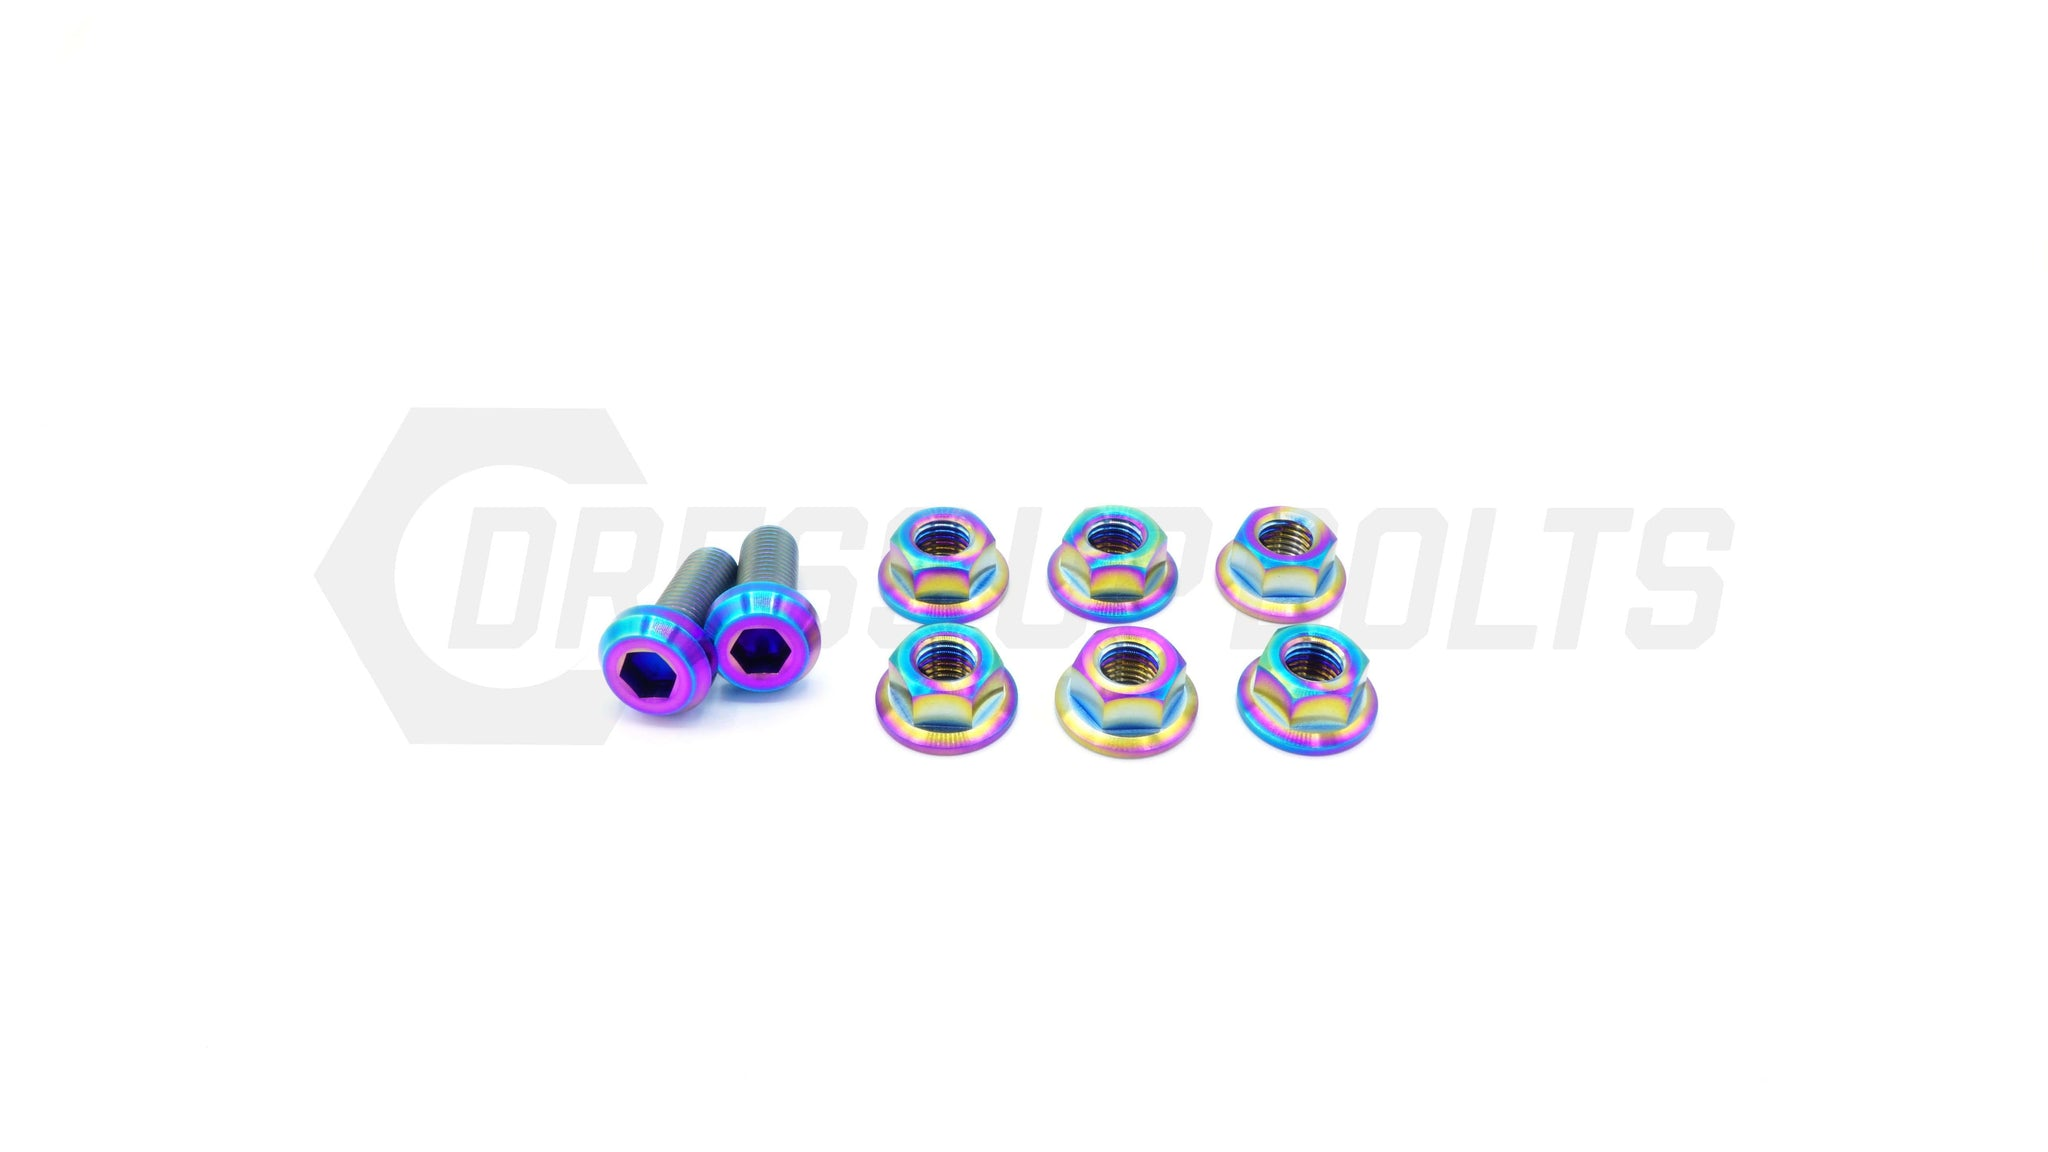 Mitsubishi Evo IX (2006-2007) Titanium Dress Up Bolts Strut Tower Kit - DressUpBolts.com